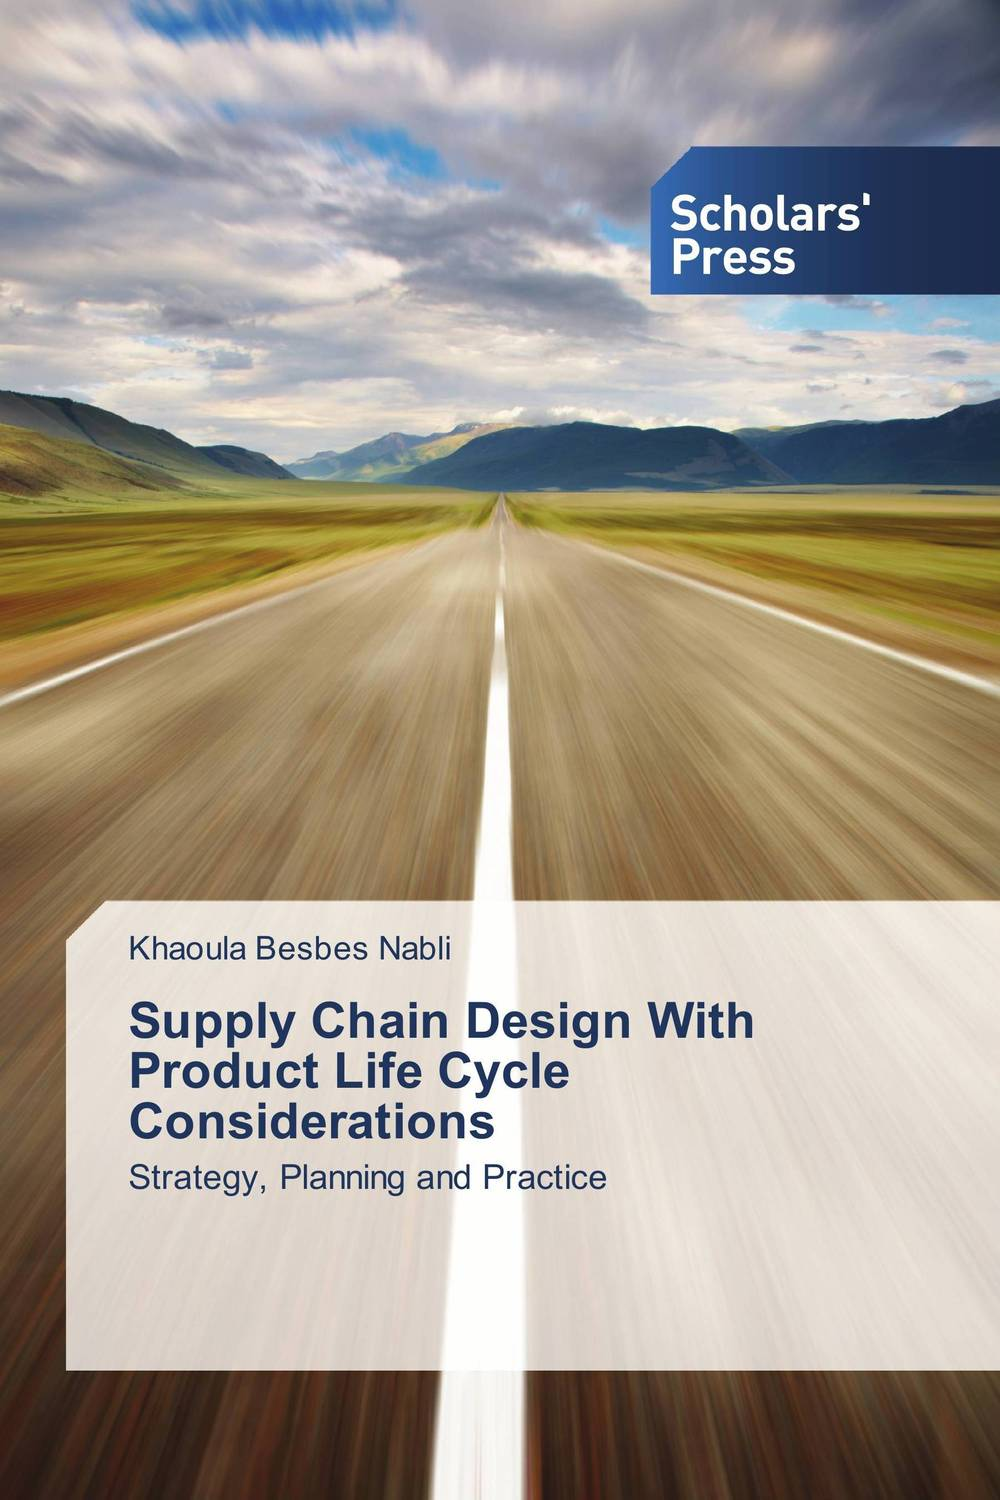 Supply Chain Design With Product Life Cycle Considerations the organizational role of the supply chain manager